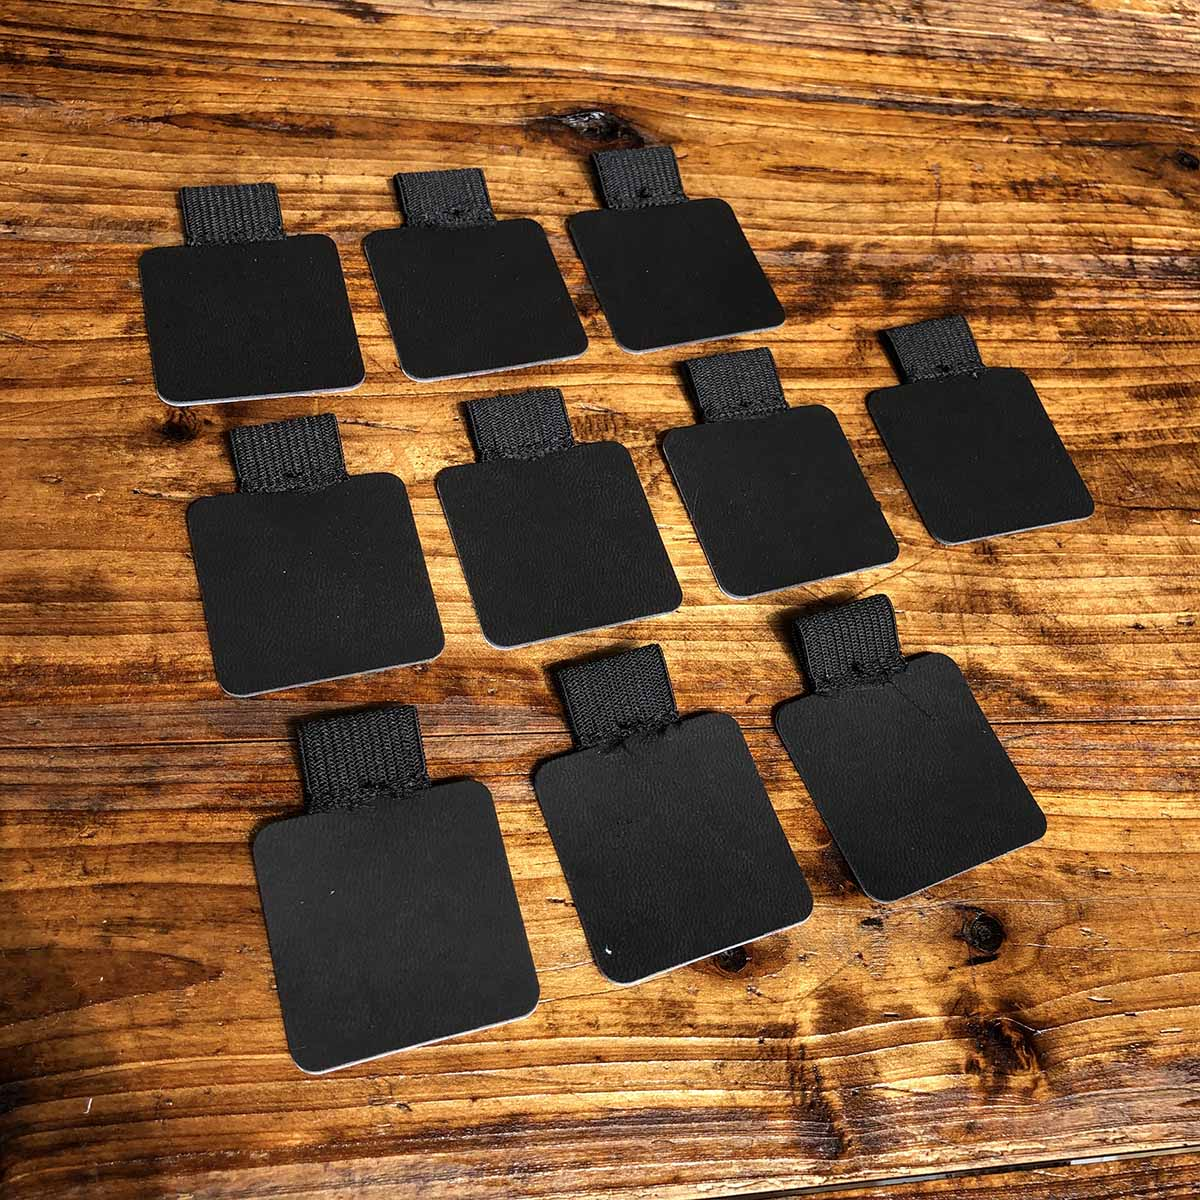 10PC Self-Adhesive BLACK Leather Pen Clip Pencil Elastic Loop For Notebooks Journals